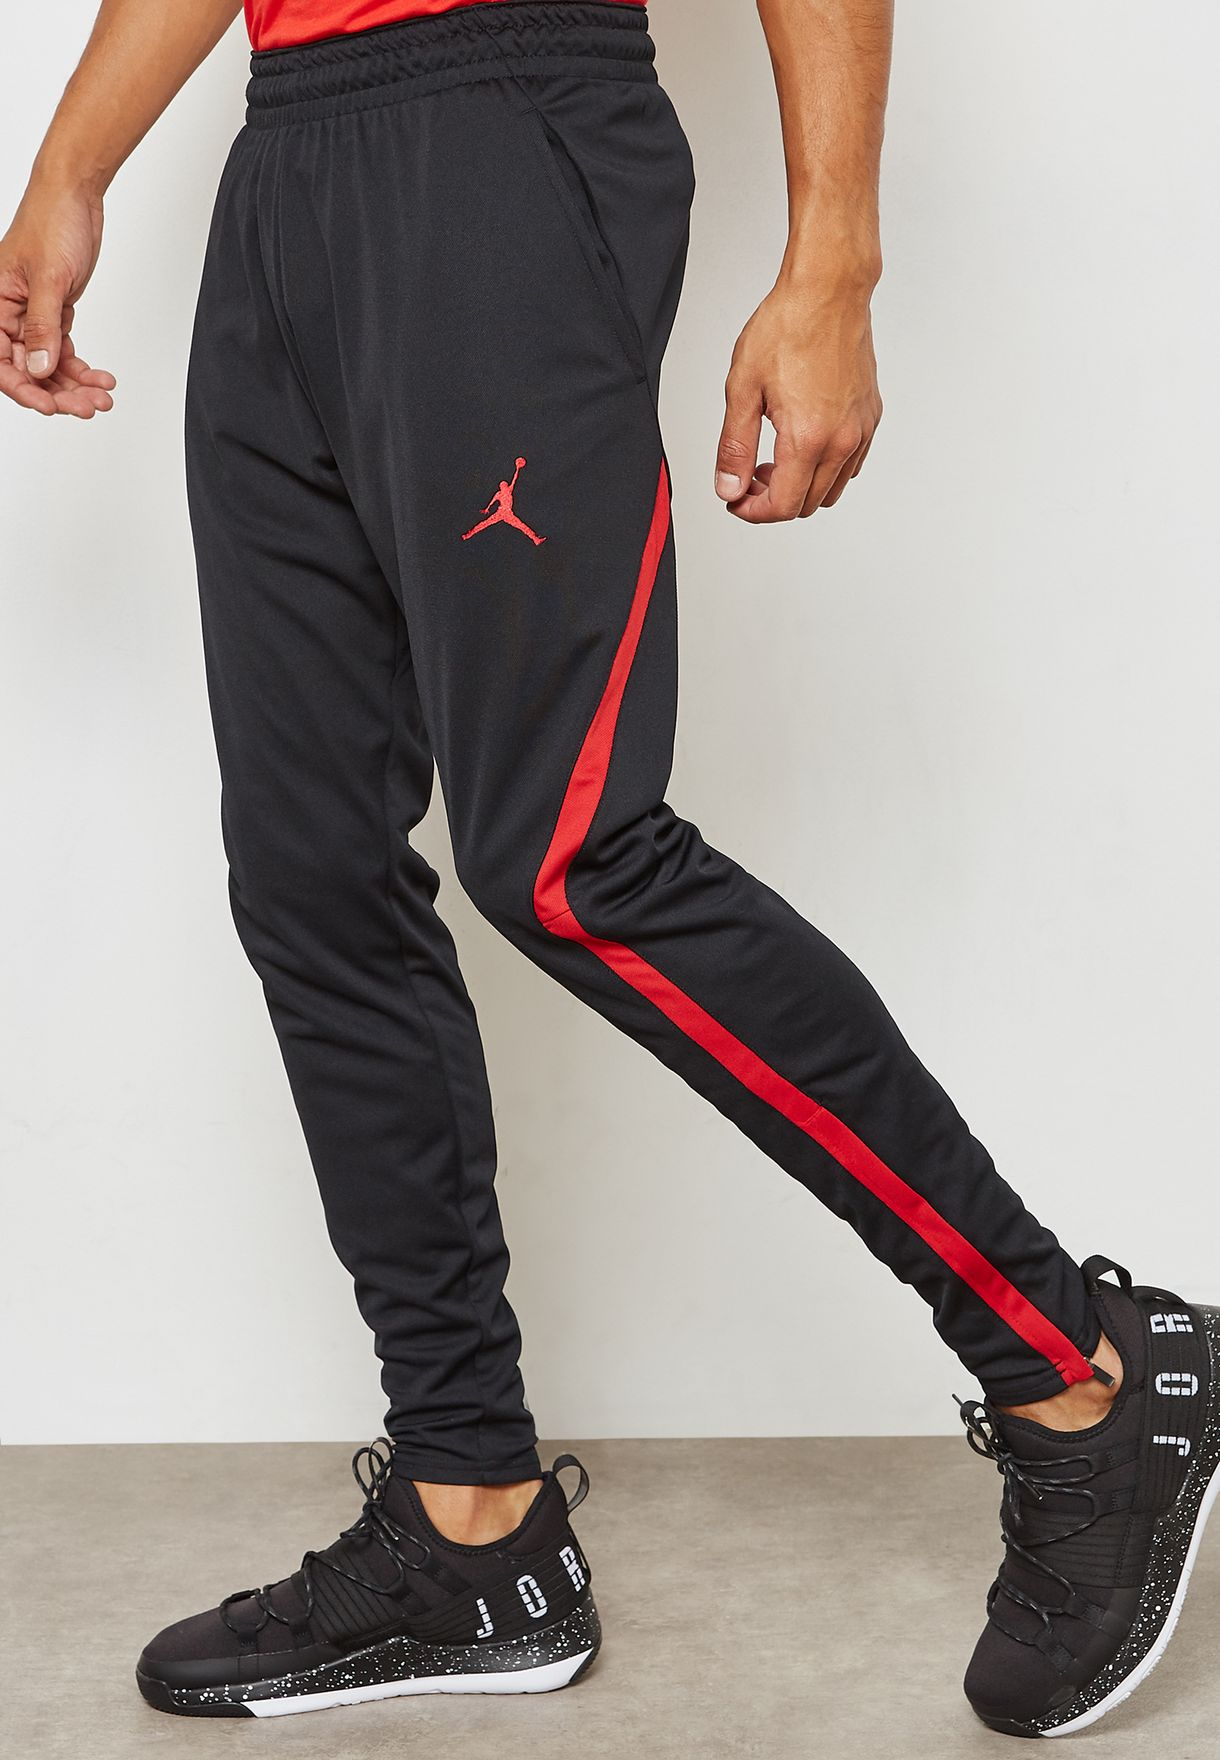 e4d62cb92a6 Shop Nike black Jordan Dri-FIT 23 Alpha Sweatpants 889711-011 for ...